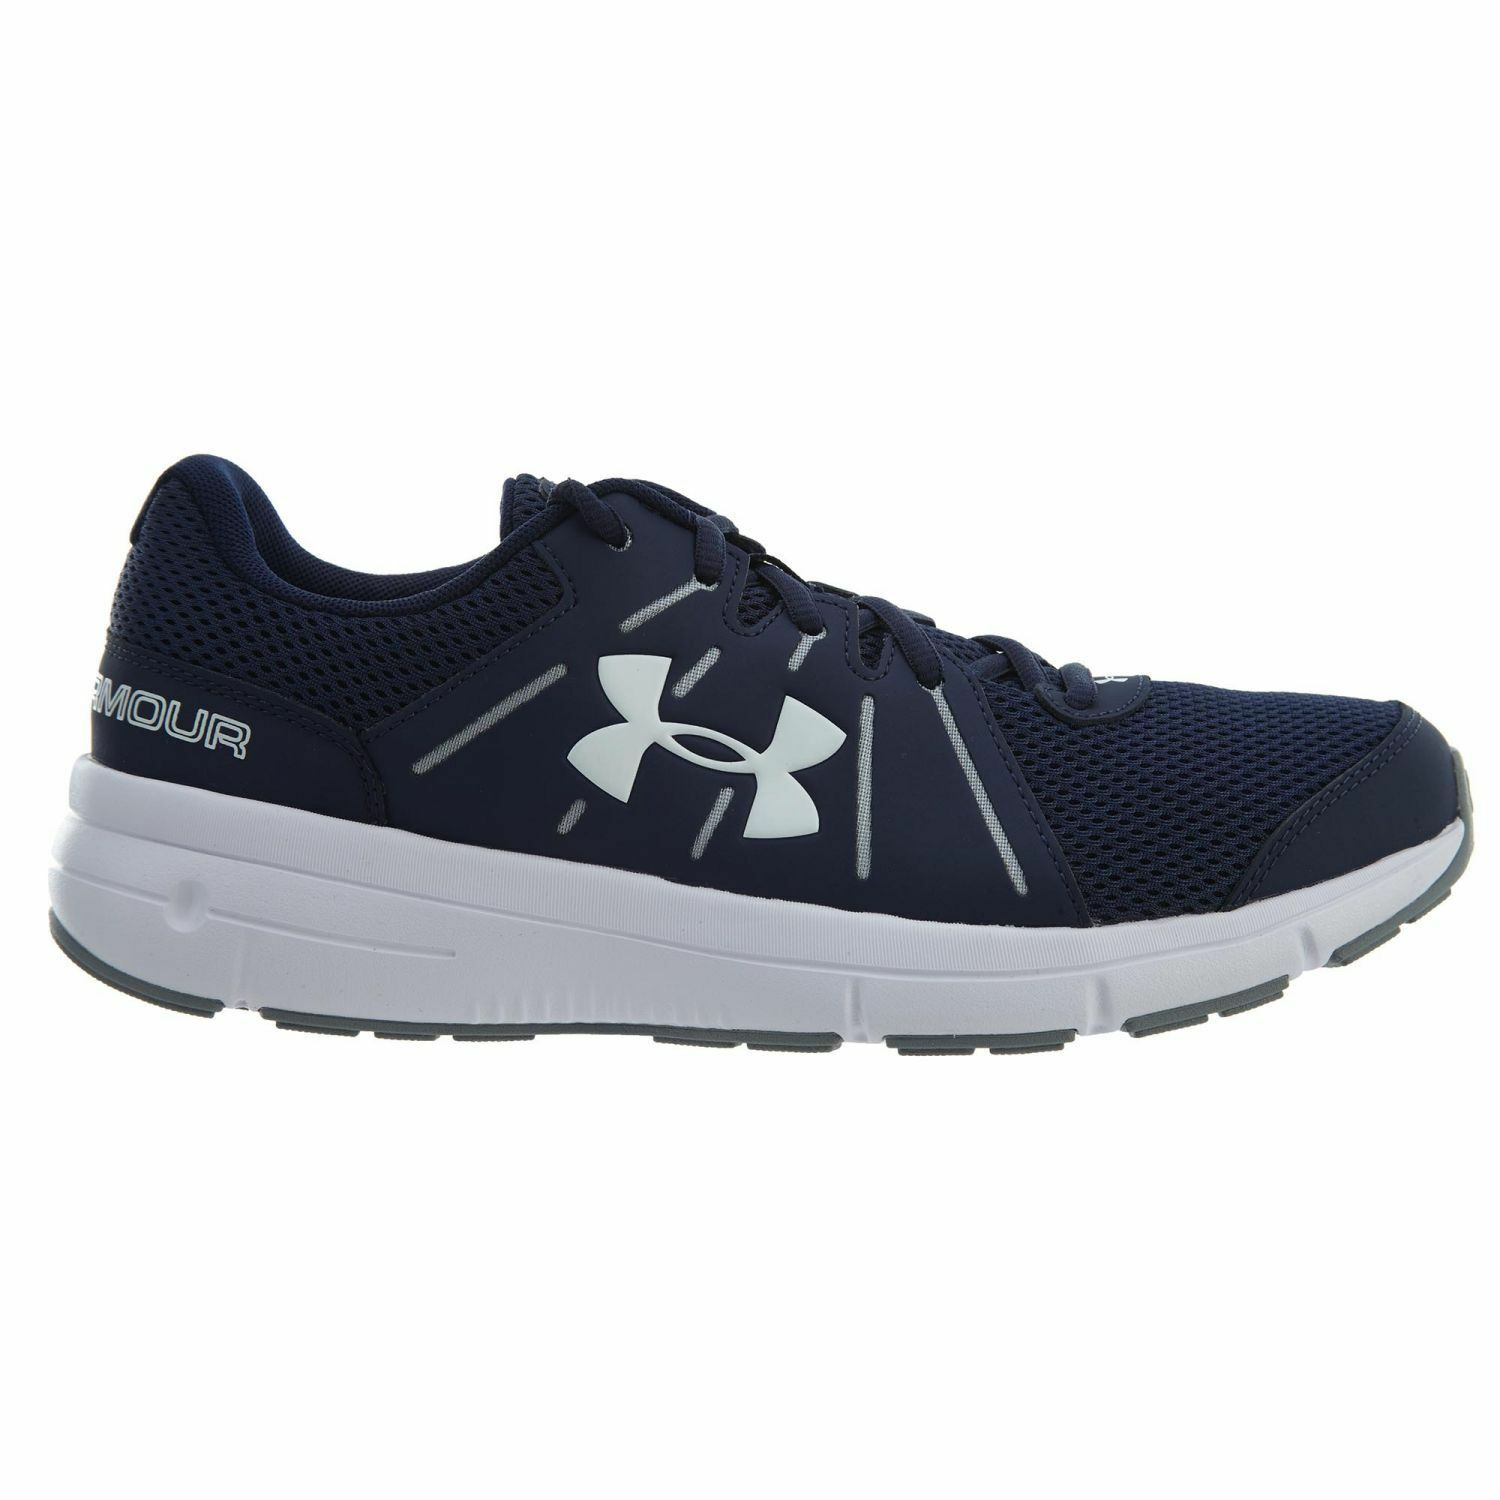 Under Armour Dash RN 2 Uomo 1285671-410 Navy Steel White Running Shoes Size 9.5